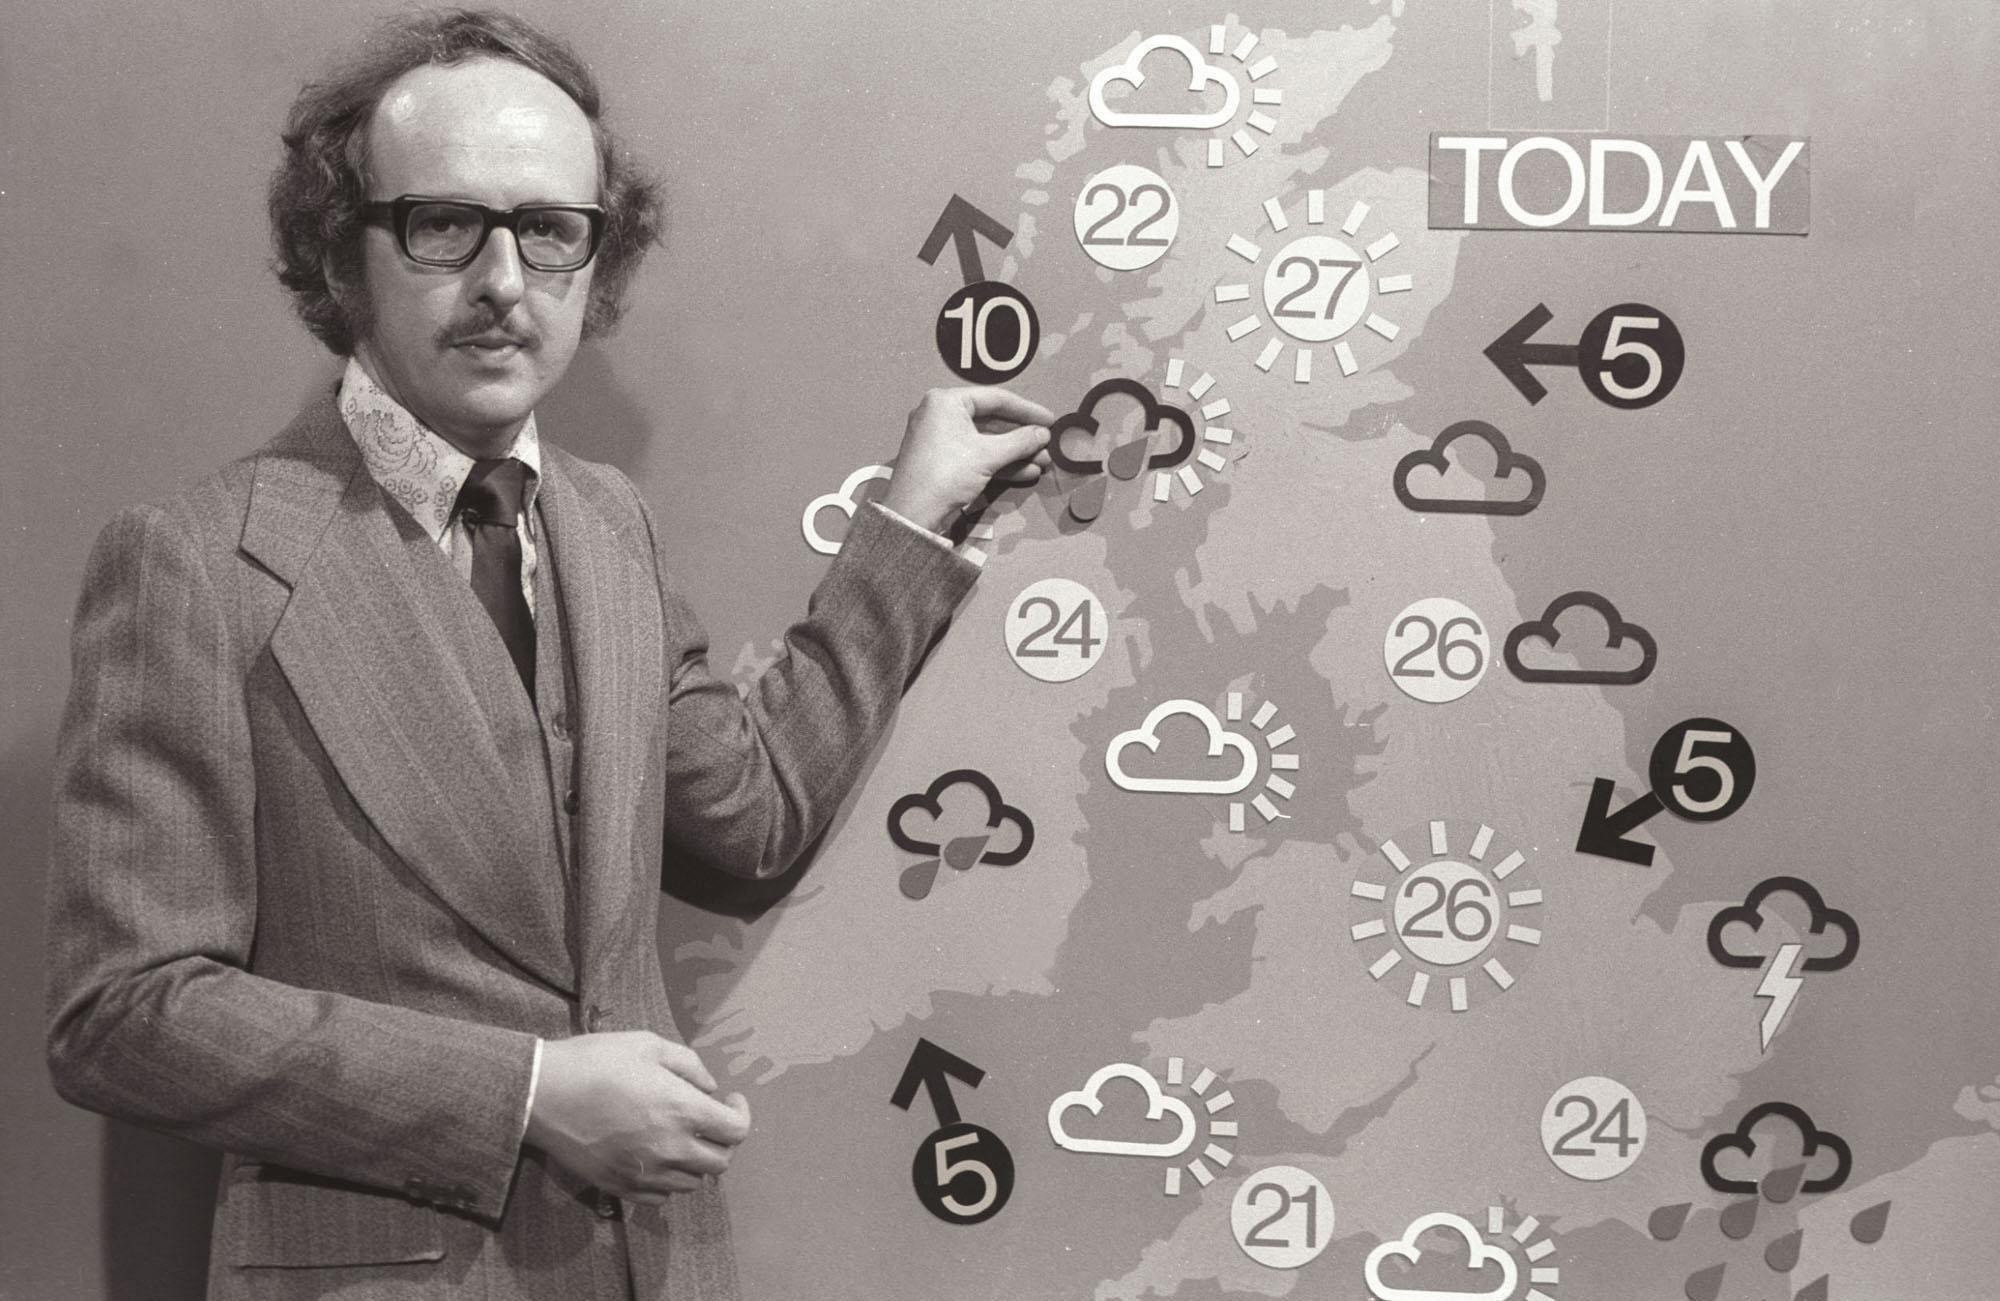 Weatherman Michael Fish